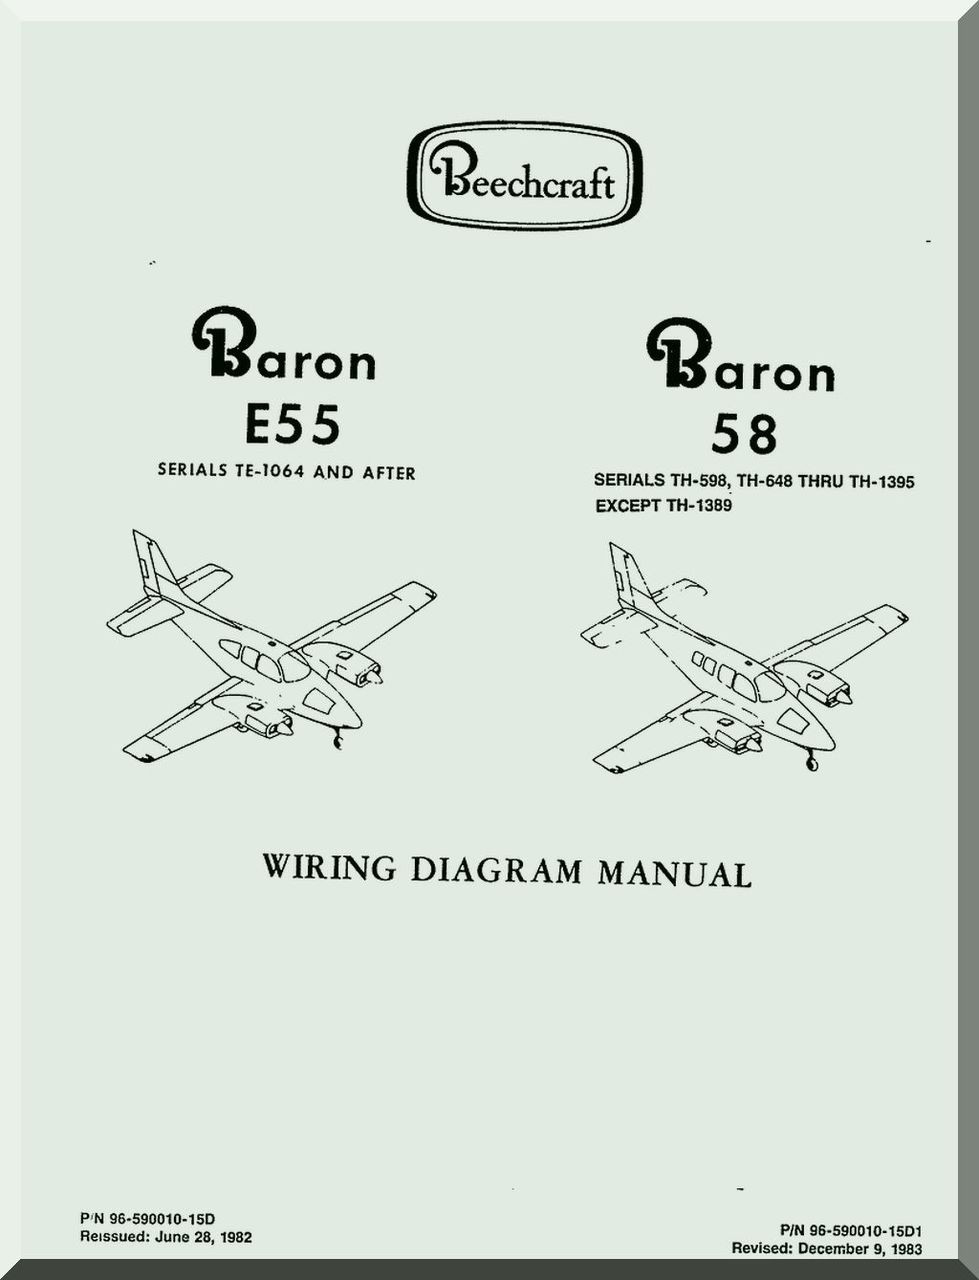 small resolution of  aircraft wiring diagram manual price 14 85 image 1